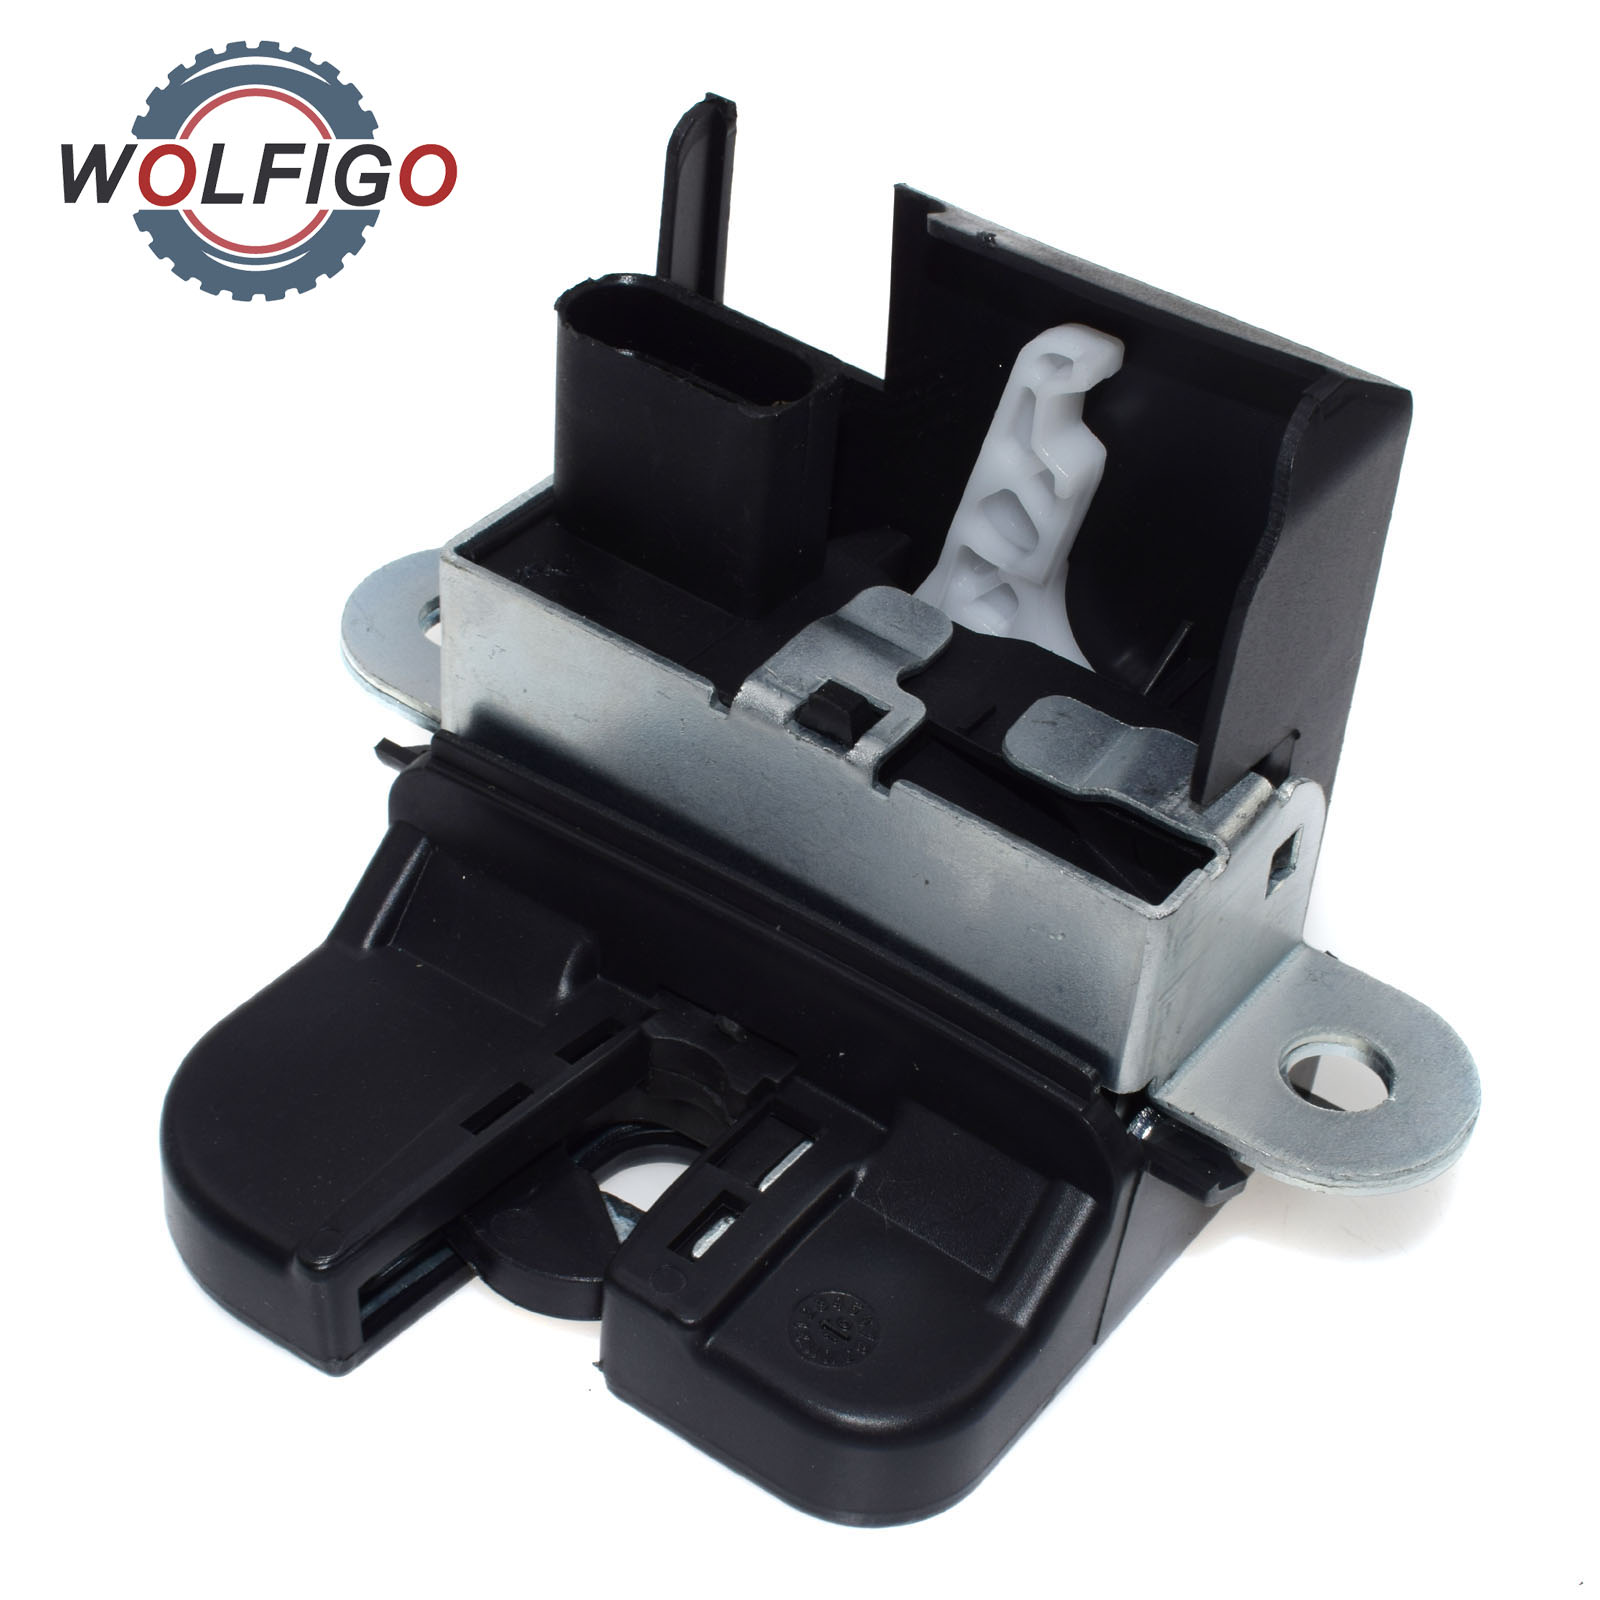 medium resolution of wolfigo new tailgate boot rear trunk lid lock latch 1t0827505h 5k0827505a for vw volkswagen touran 2003 2015 golf passat in trunk lids parts from